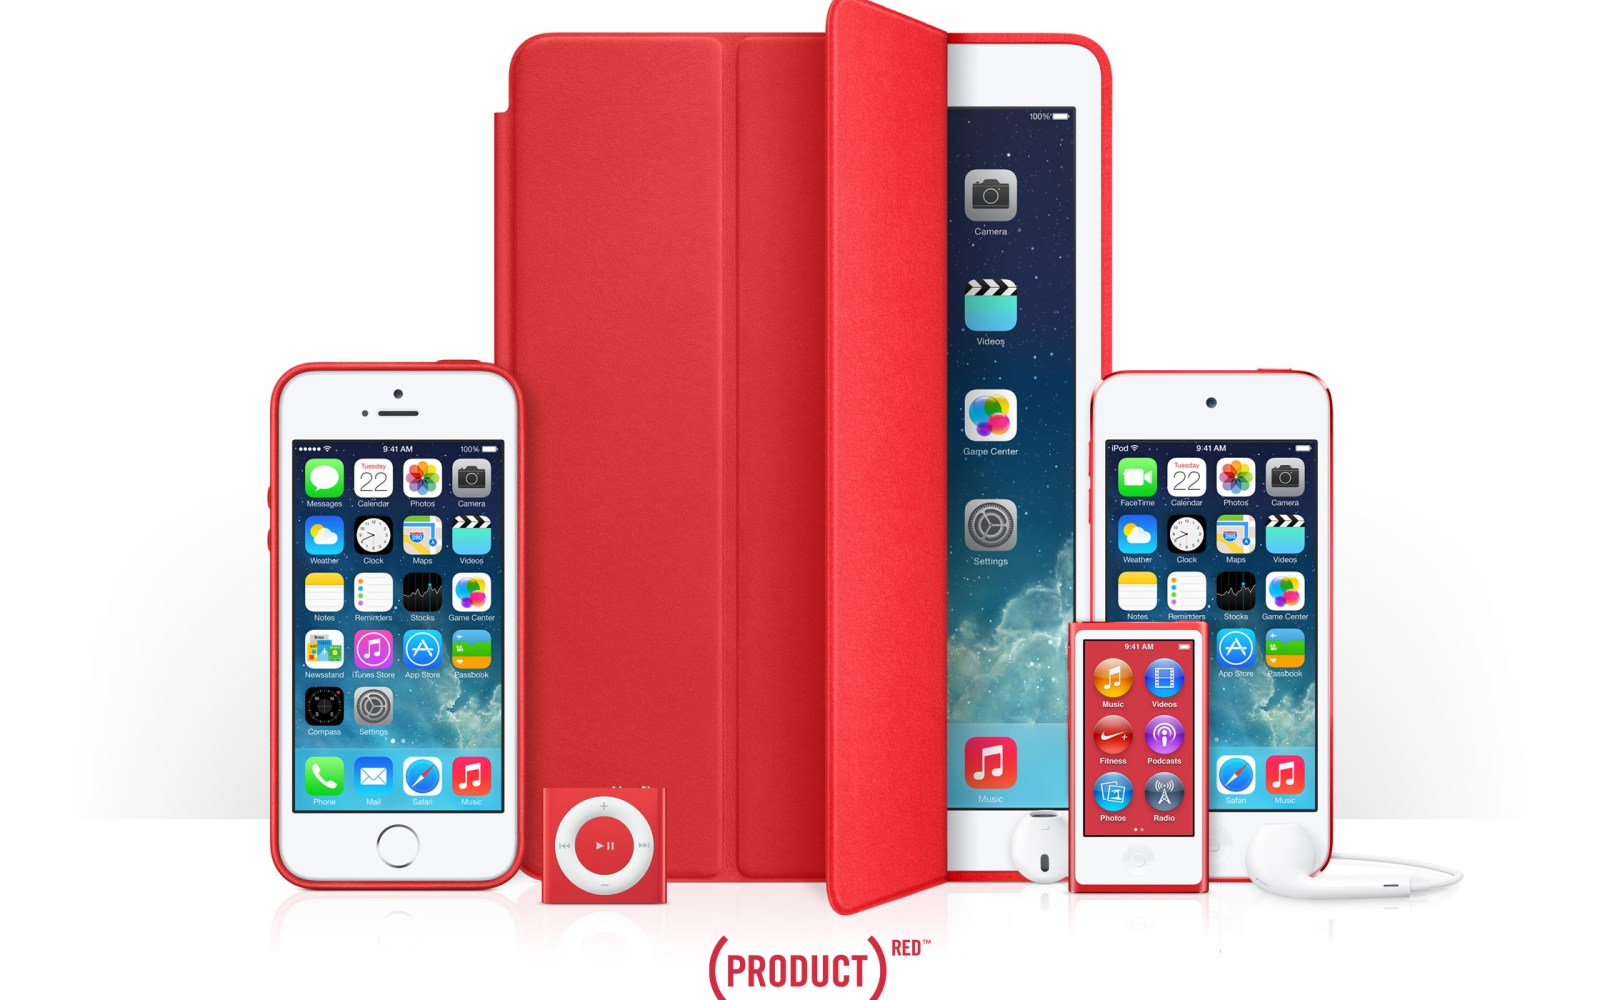 Apple's contributions to fight AIDS through (PRODUCT)RED have topped $70 million